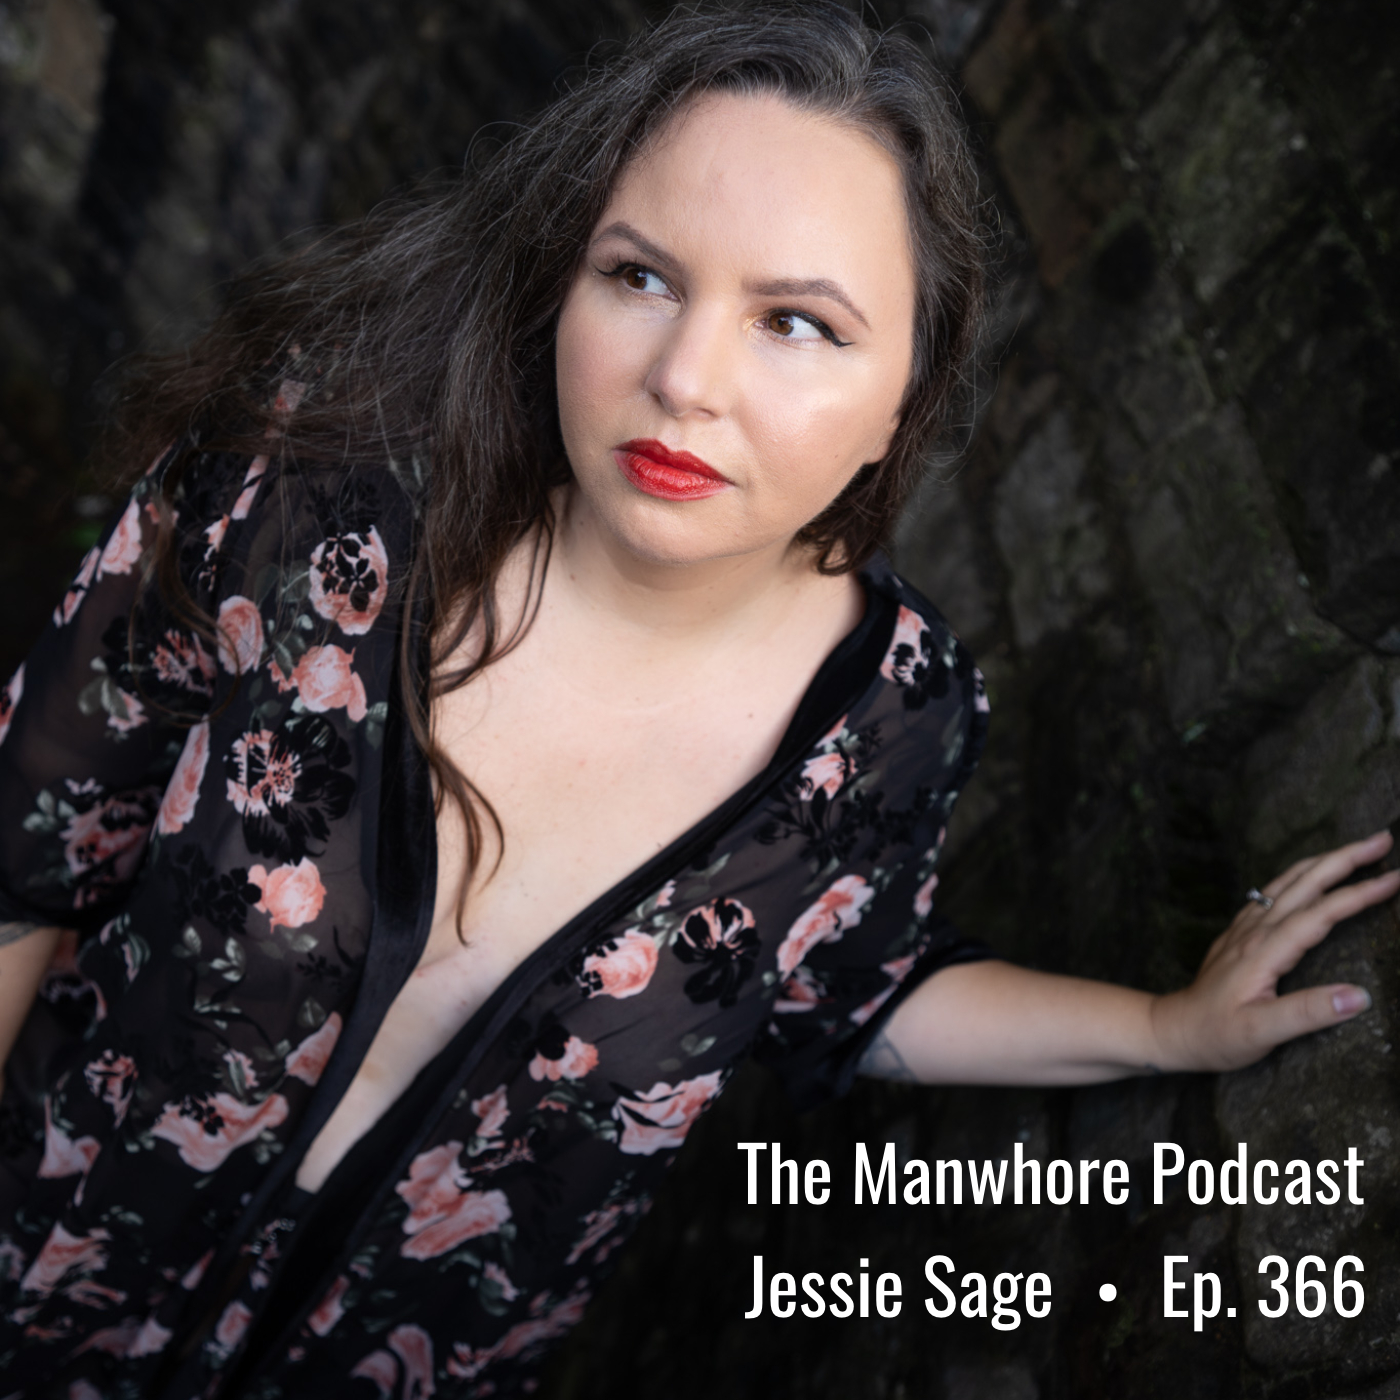 The Manwhore Podcast: A Sex-Positive Quest - Ep. 366: Sex Work From Home with Jessie Sage